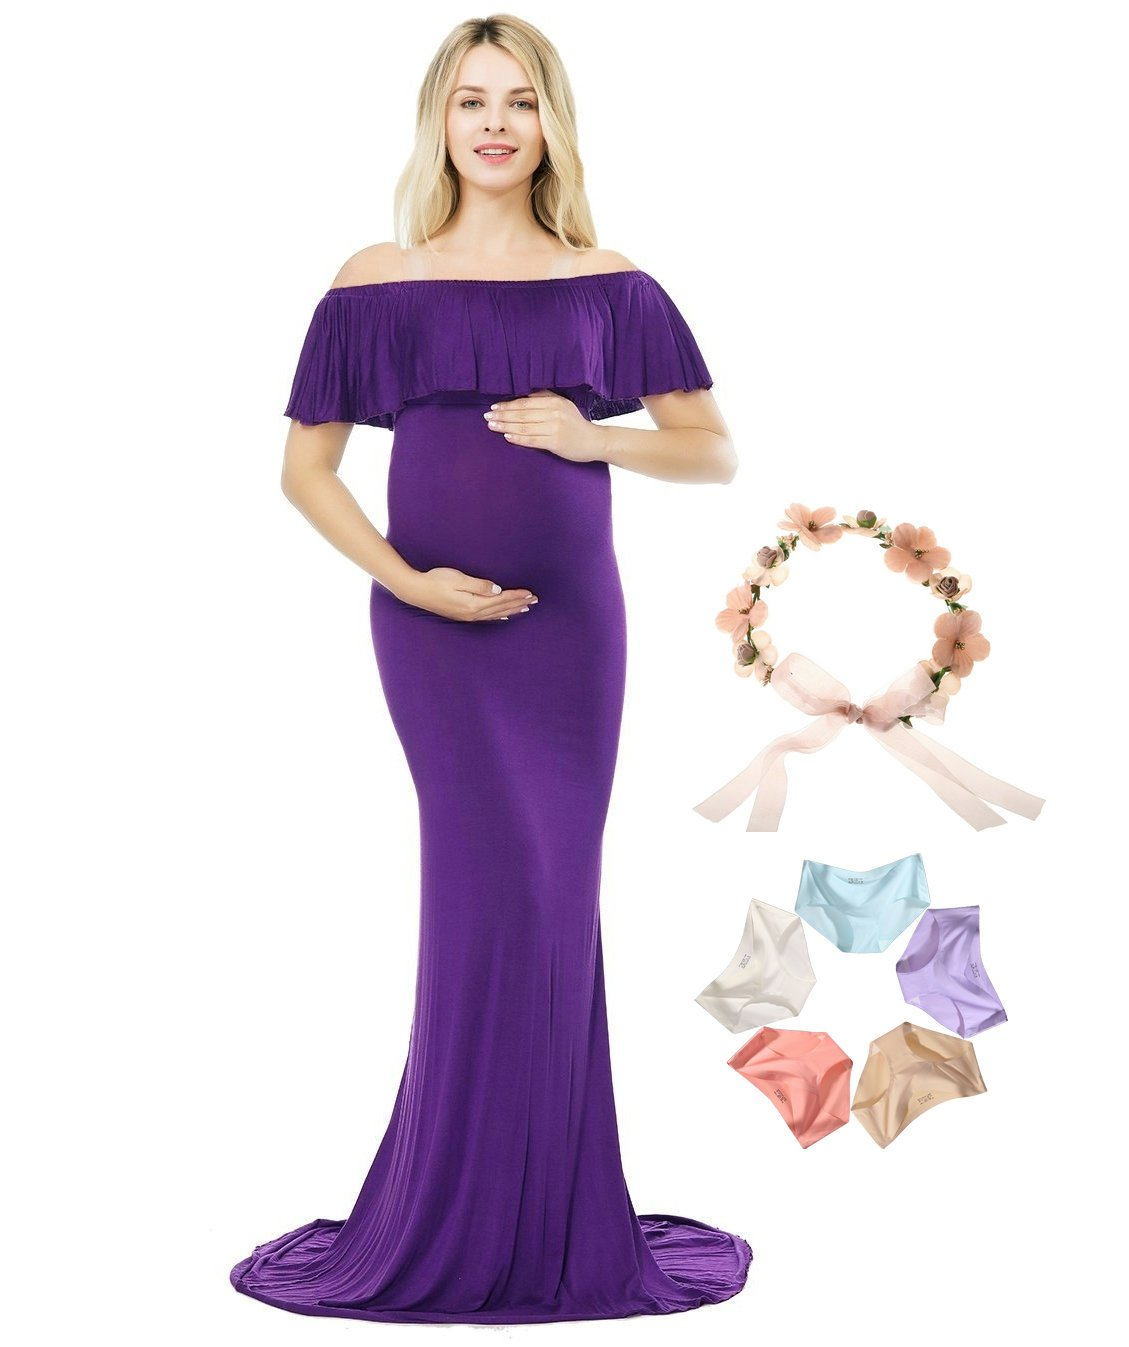 Sannyway Photoshoot Maternity Dress Ruffle Off Shoulder Photography Maxi Gown (Purple, L)